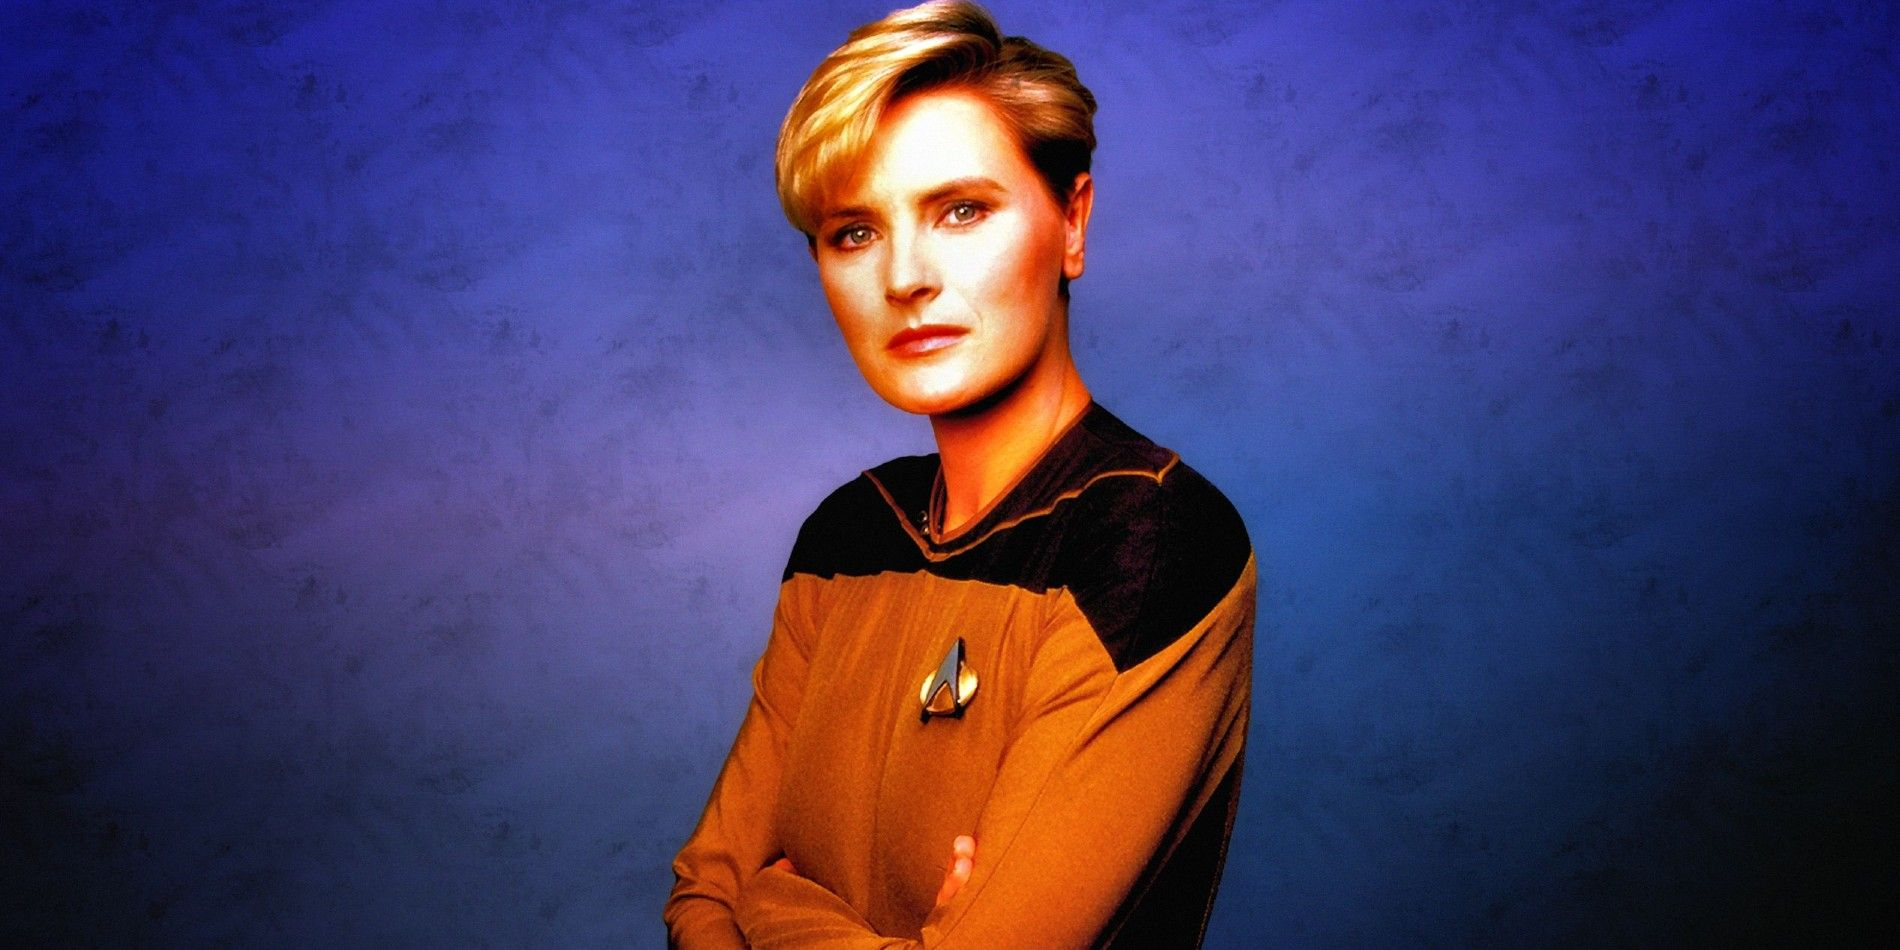 Star Trek: Denise Crosby Almost Played TNG's Deanna Troi | CBR